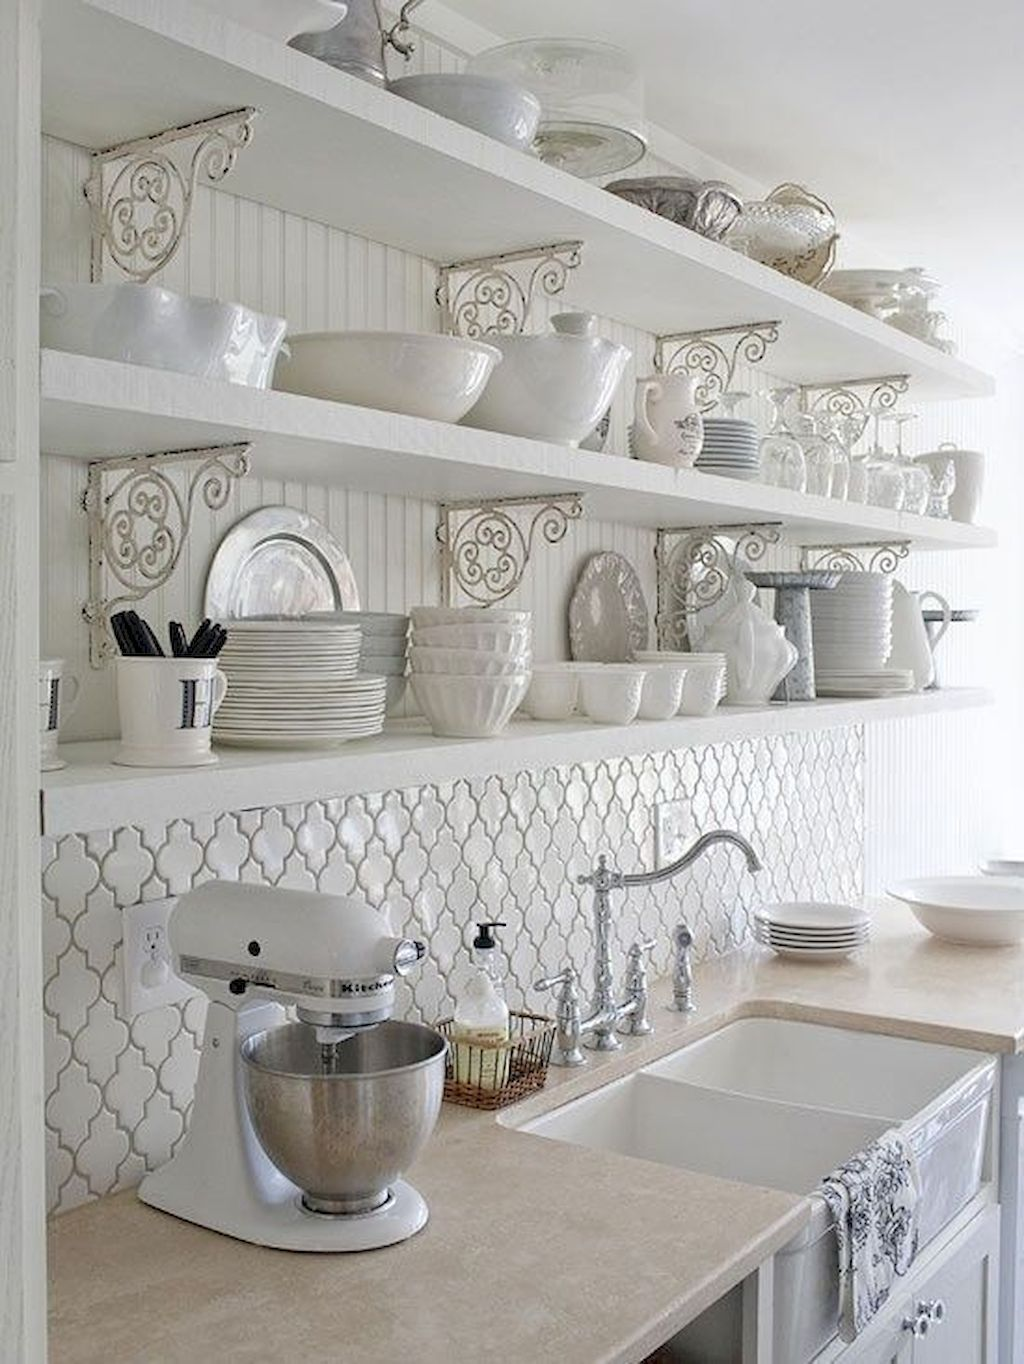 60 Stunning French Country Kitchen Decor Ideas #frenchcountrykitchens